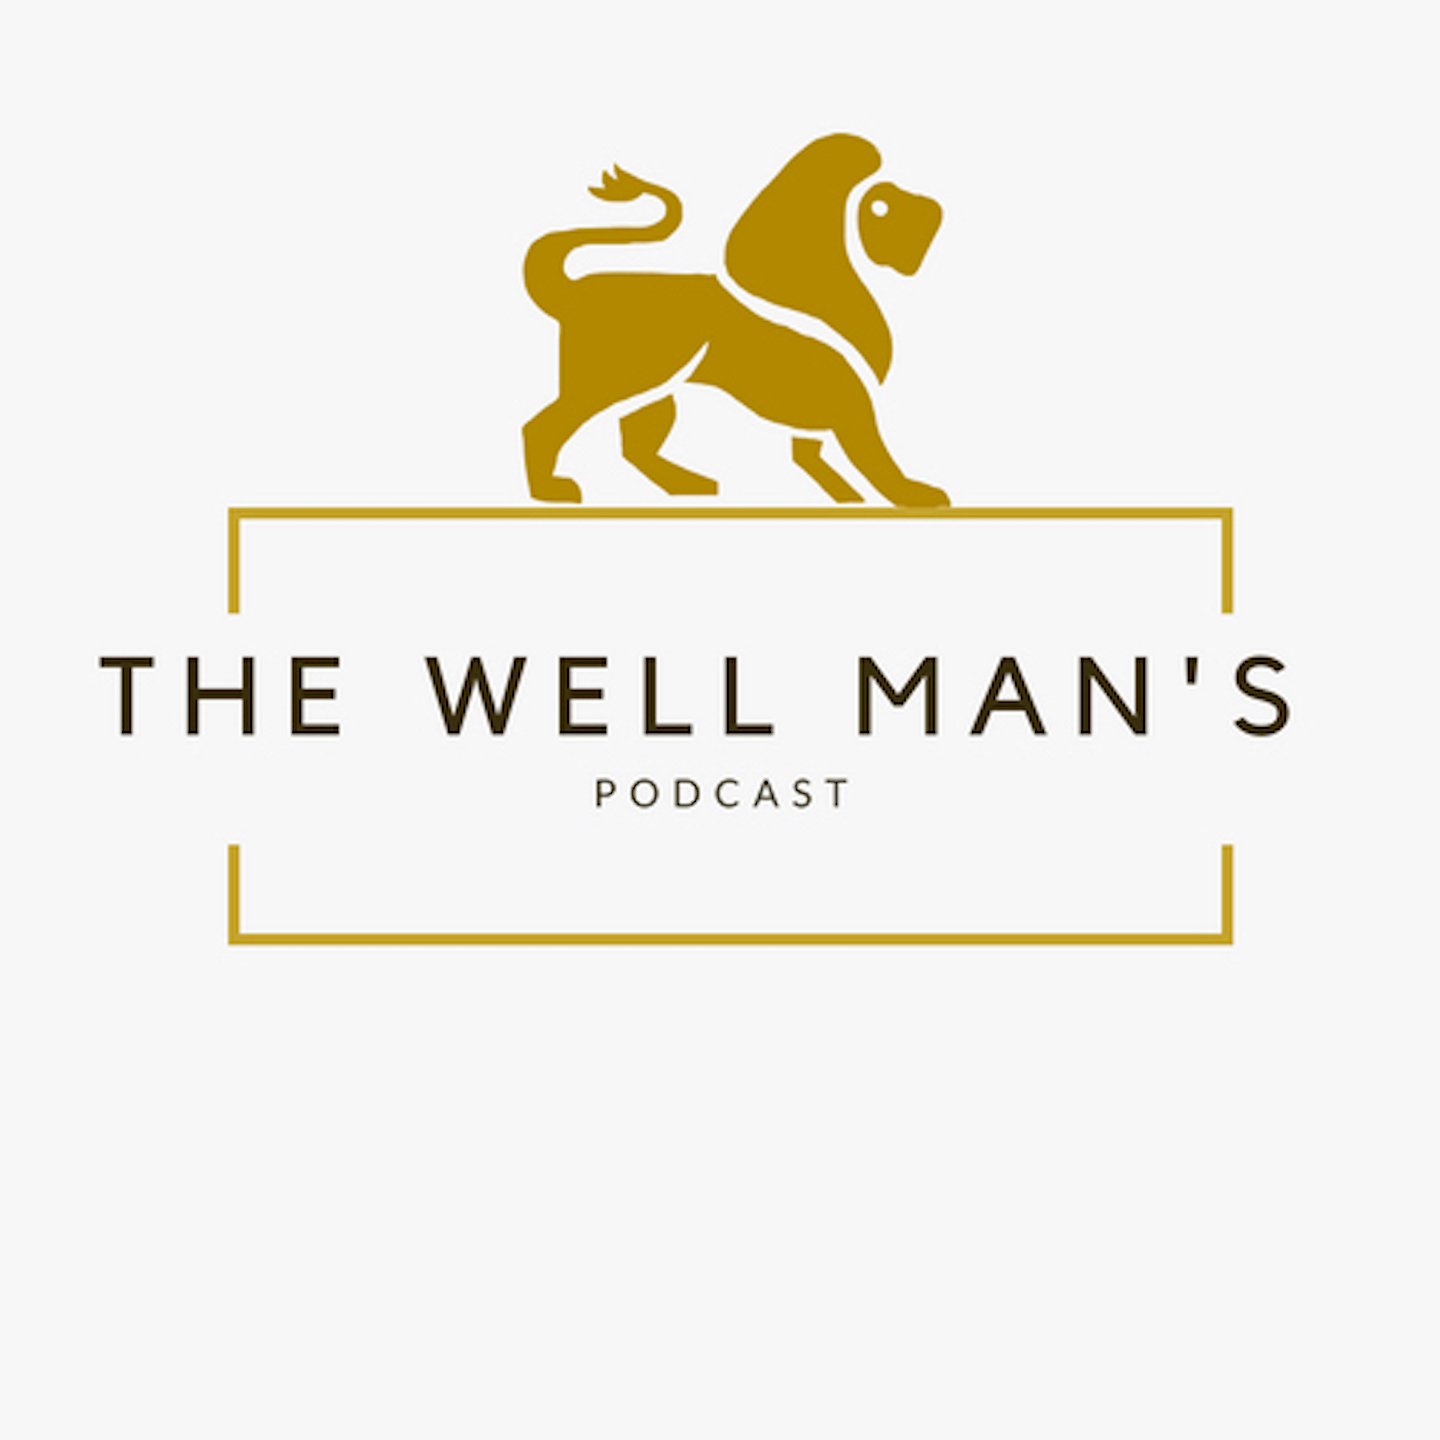 The Well Man's Podcast show art